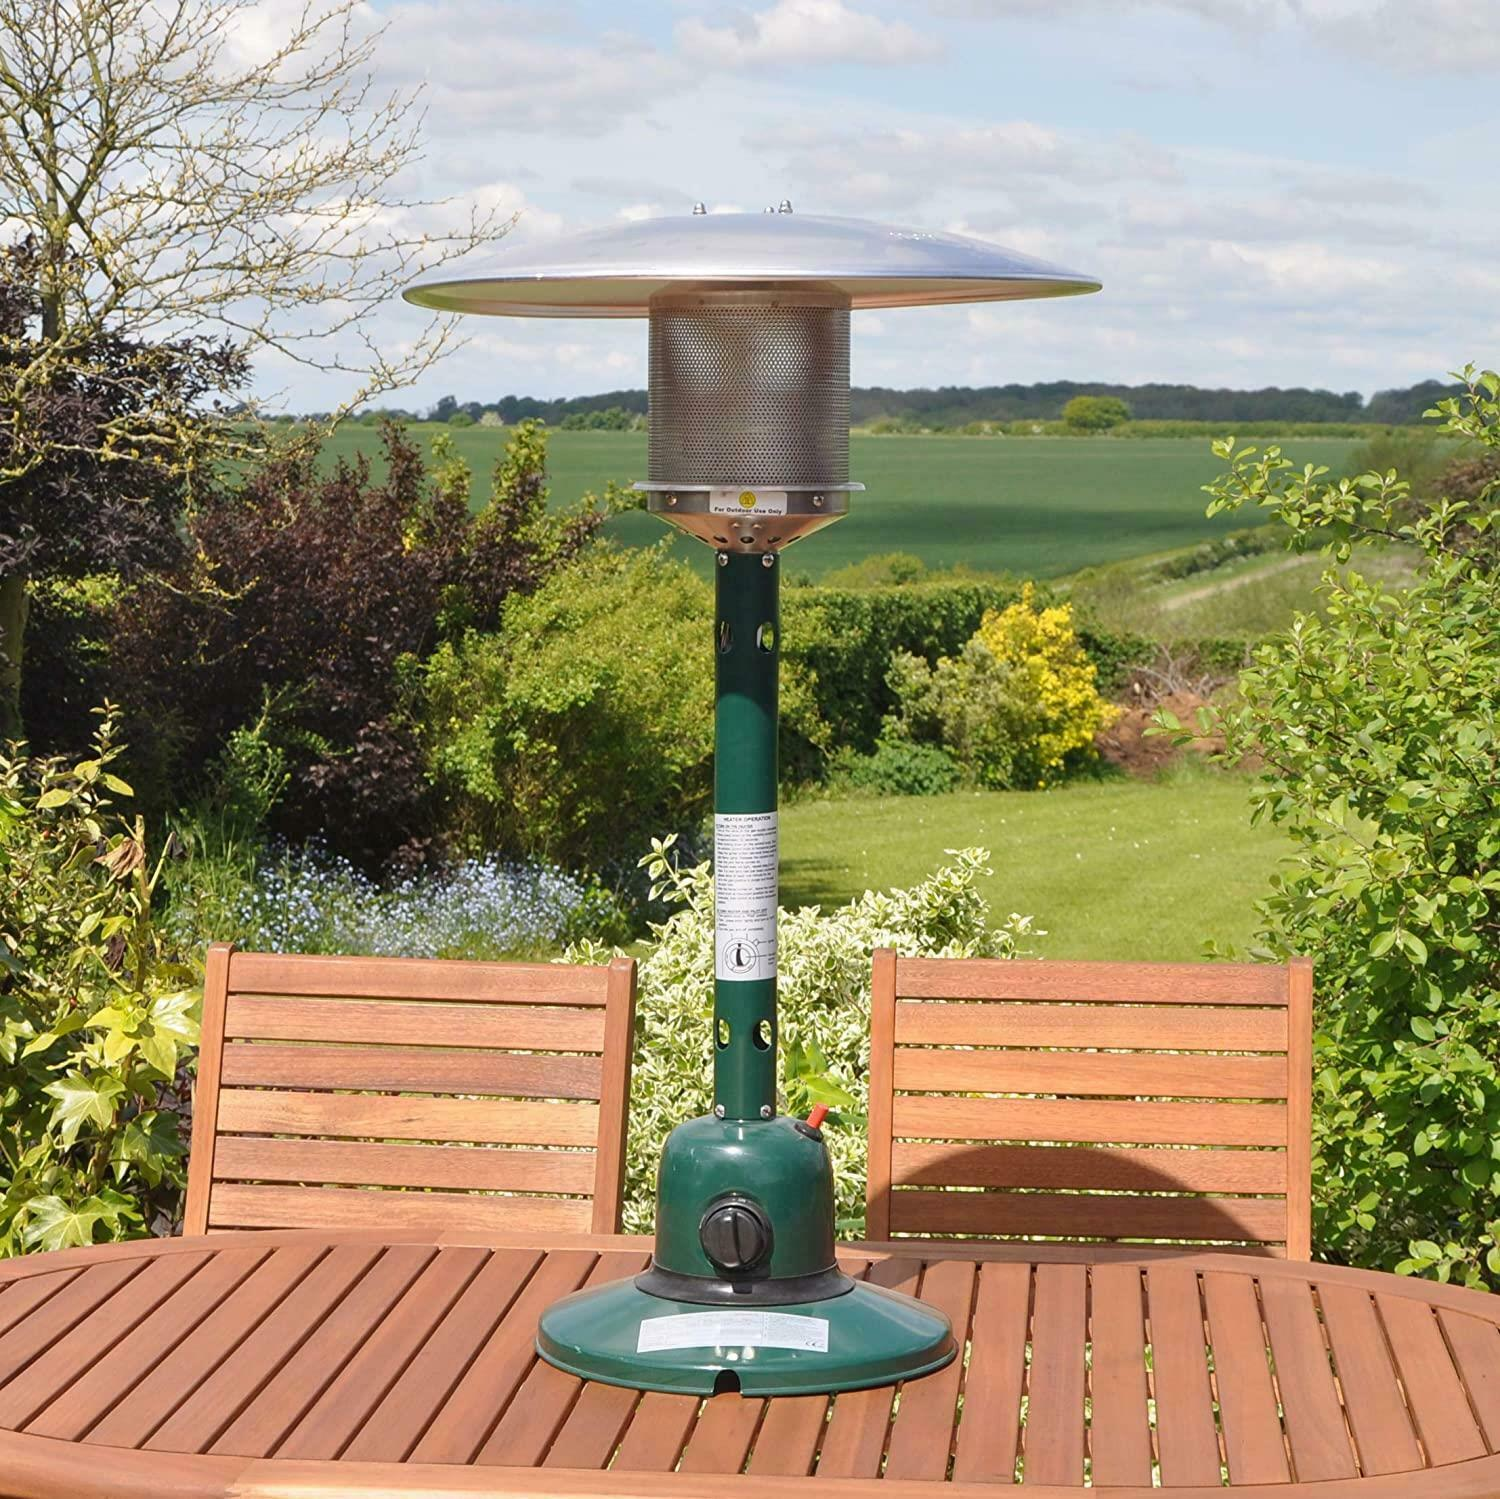 Garden Outdoor Gas Patio Heater 4KW for Gardens Patio Table Top Stainless Steel